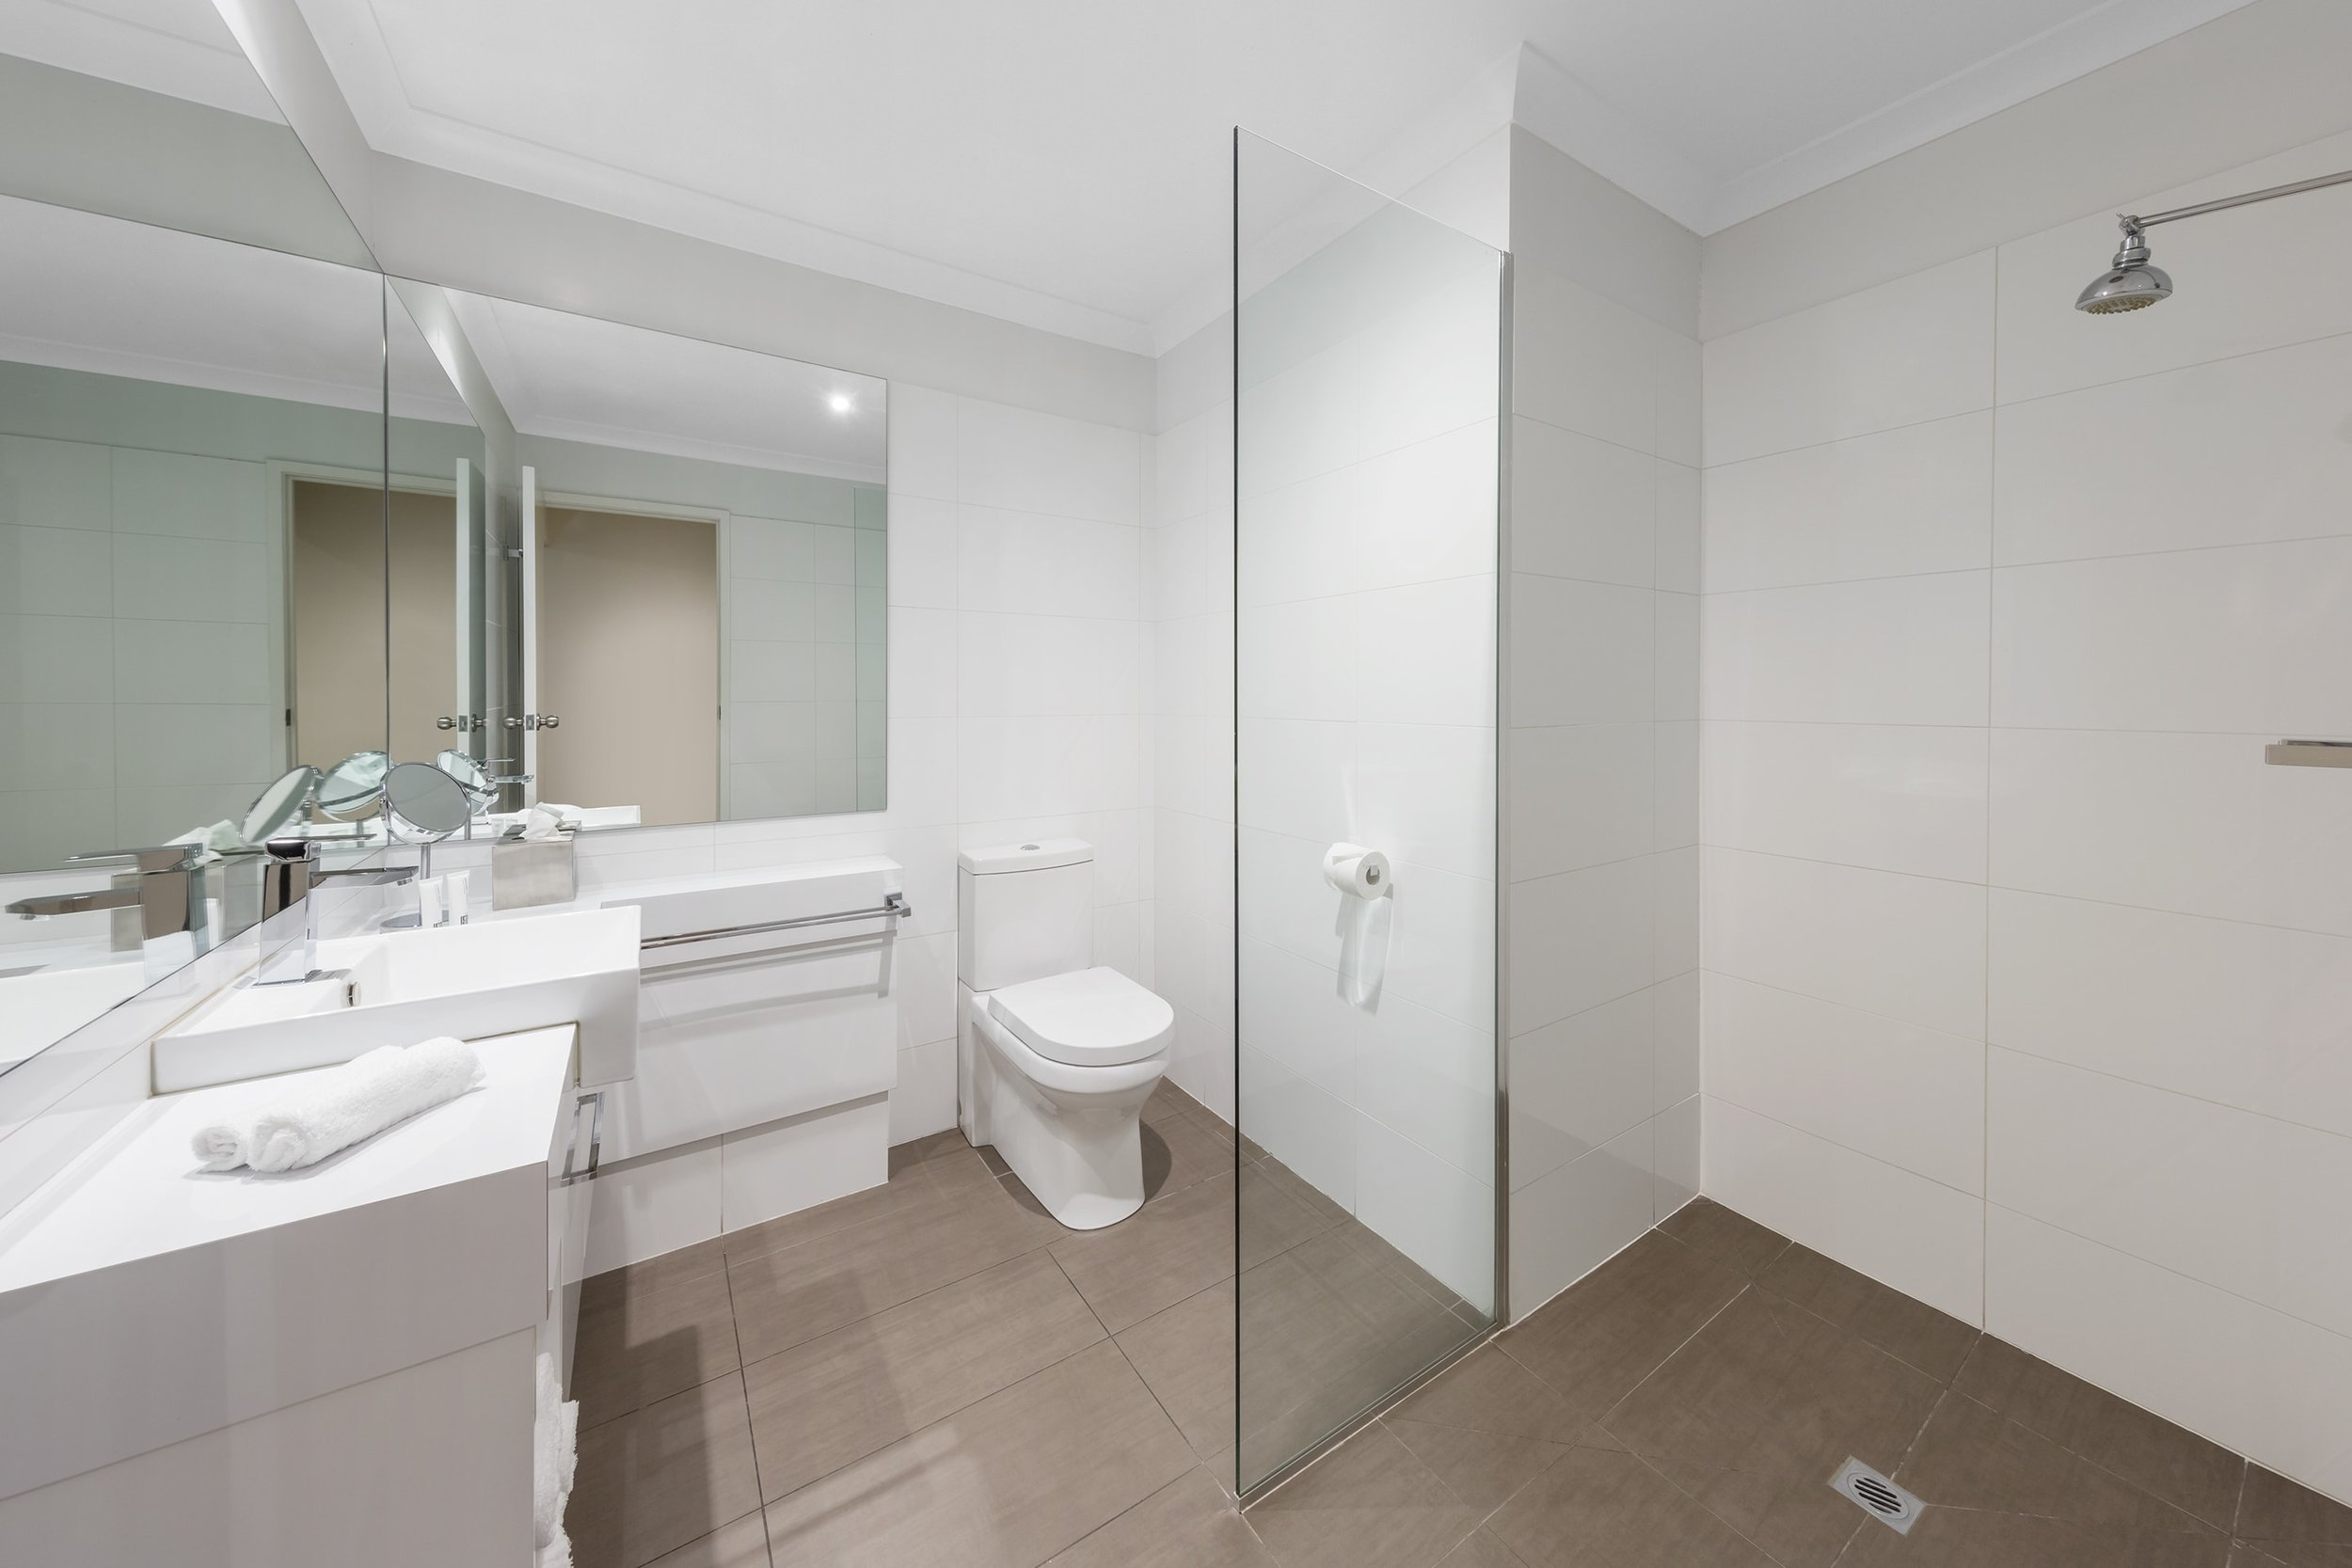 best-western-plus-the-carrington-shepparton-hotel-accommodation-deluxe-king-1.jpg